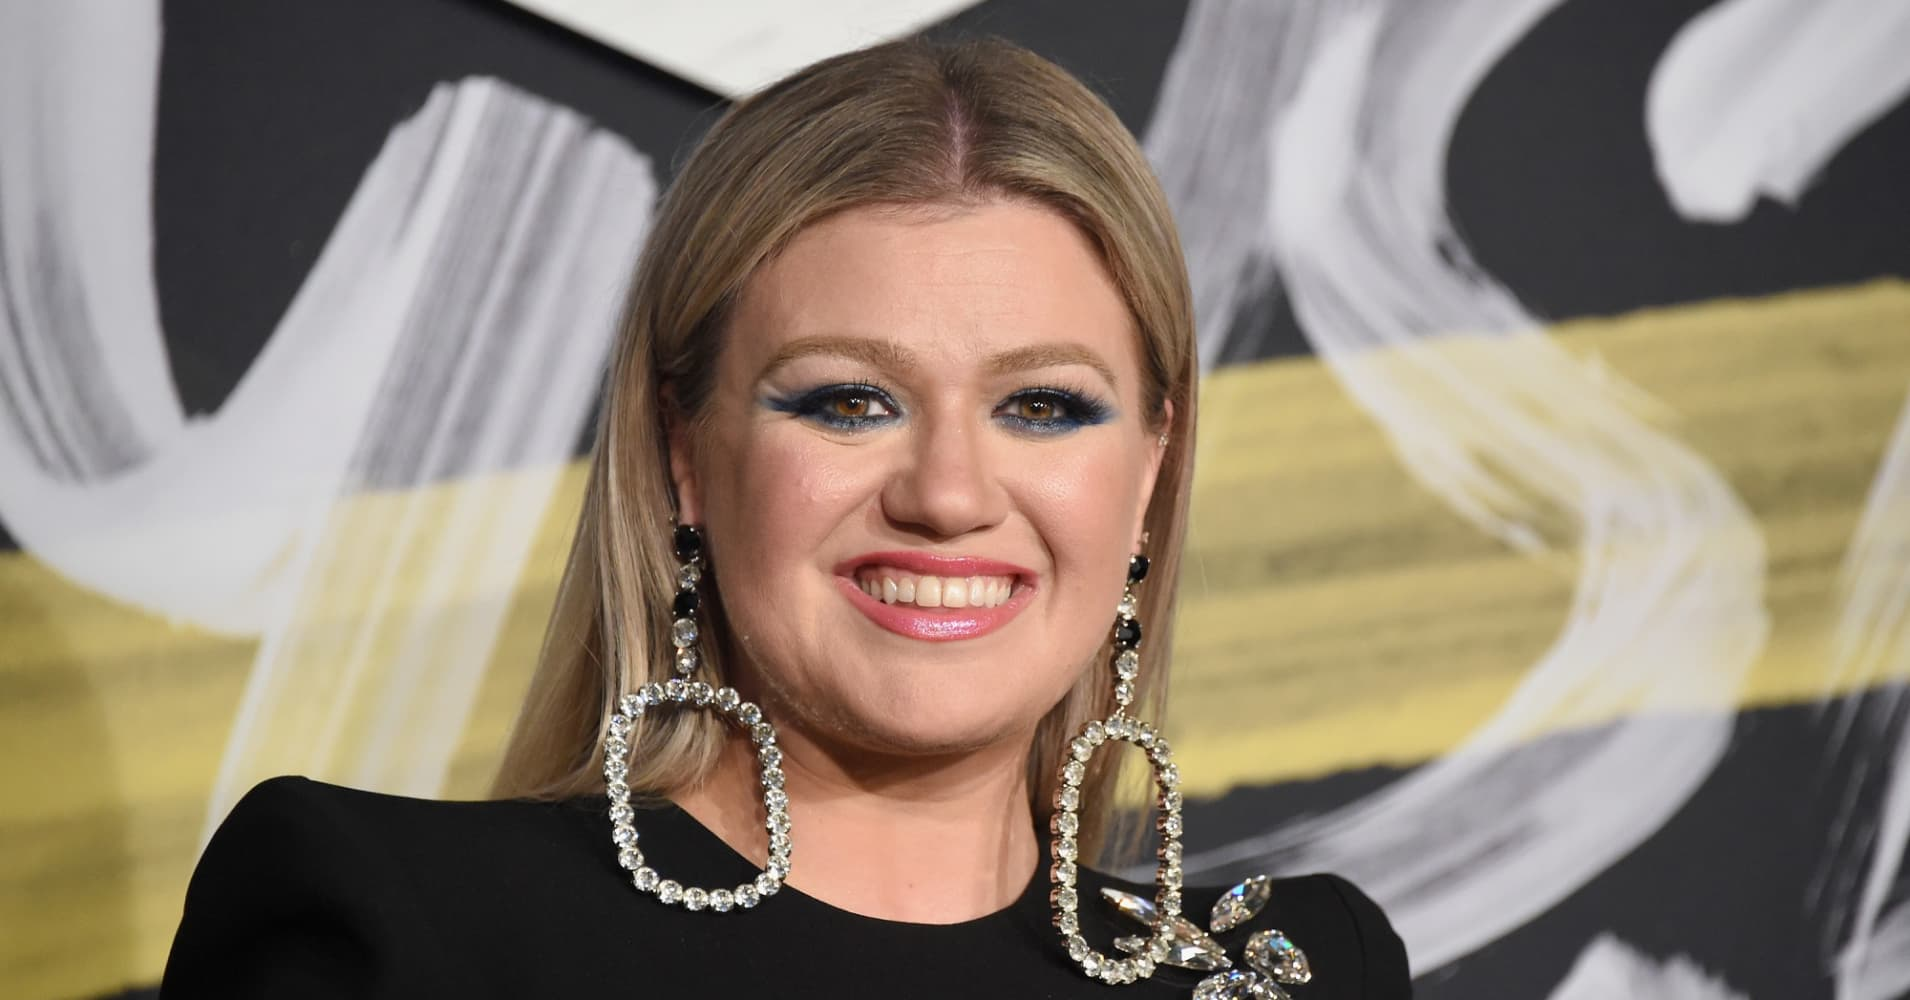 Photo Kelly Clarkson nude (34 foto and video), Sexy, Sideboobs, Twitter, panties 2019